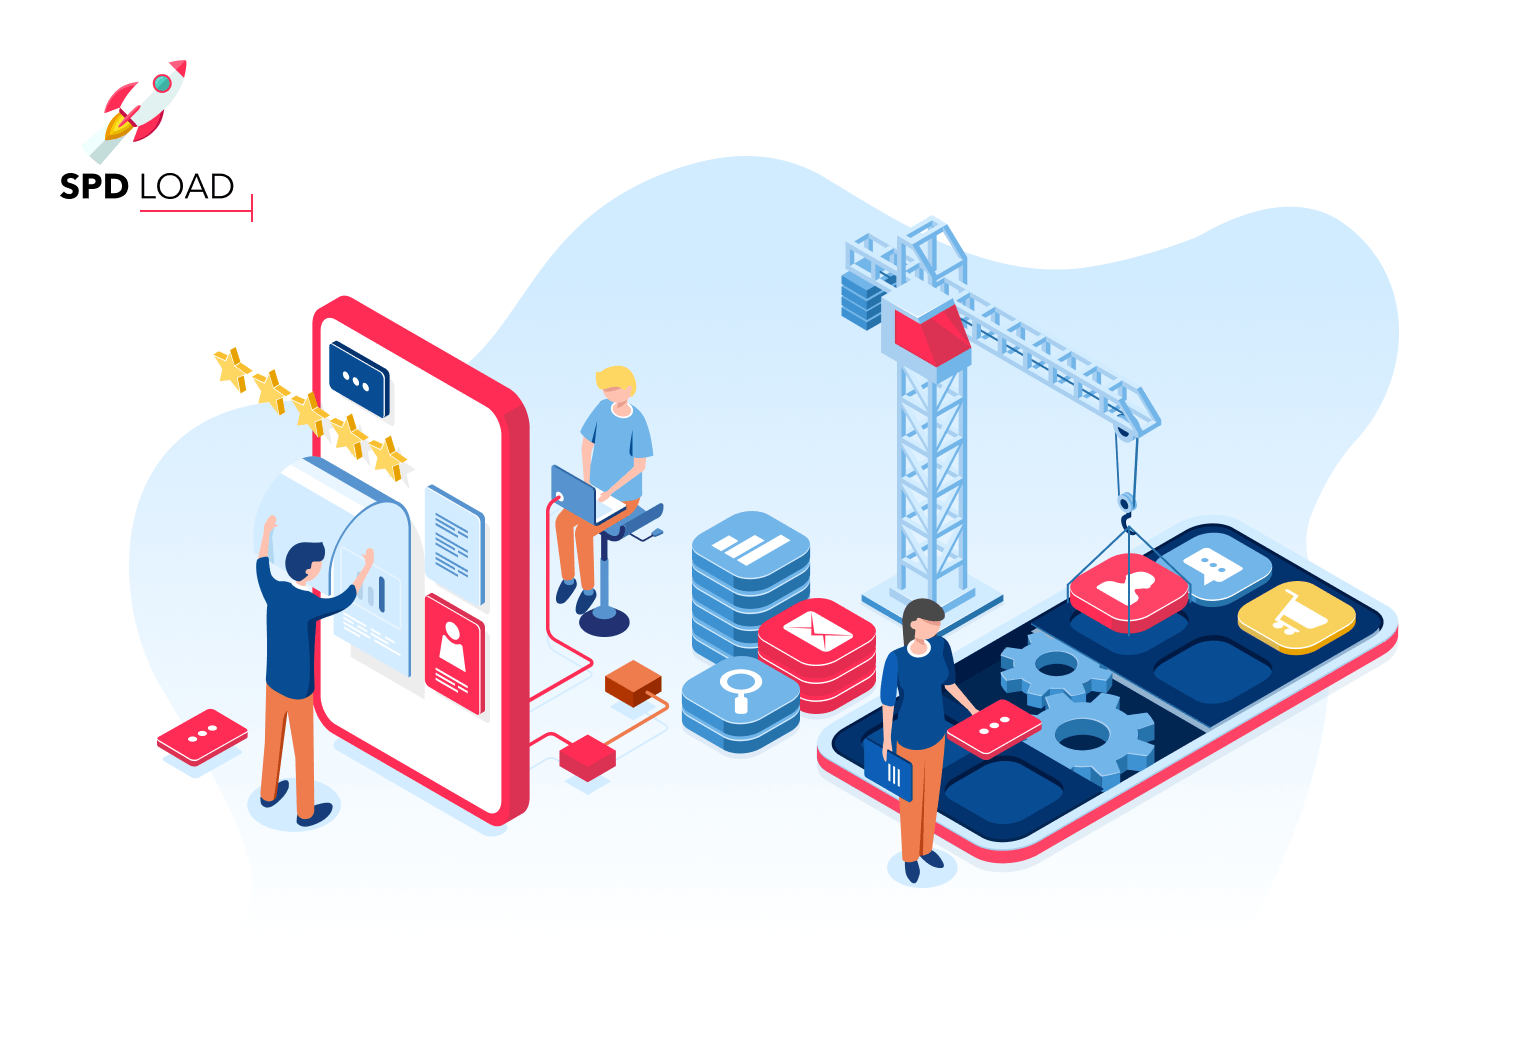 SpdLoad team prepared an in-depth guide about the mobile app design and development